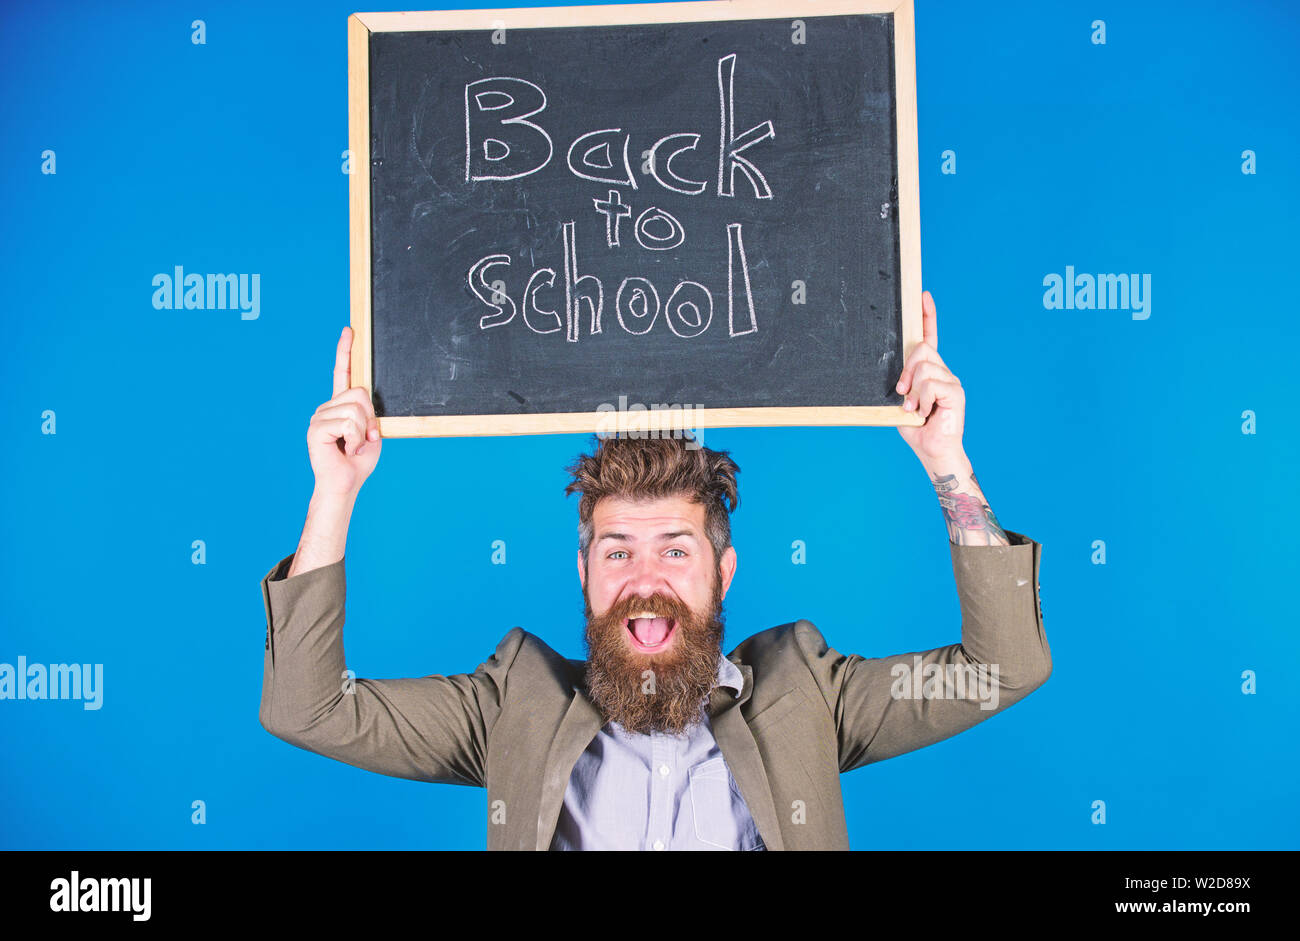 Teacher with tousled hair cheerful about school year beginning. Teacher bearded man holds blackboard with inscription back to school blue background. Keep working and be kind to people. Stay positive. - Stock Image